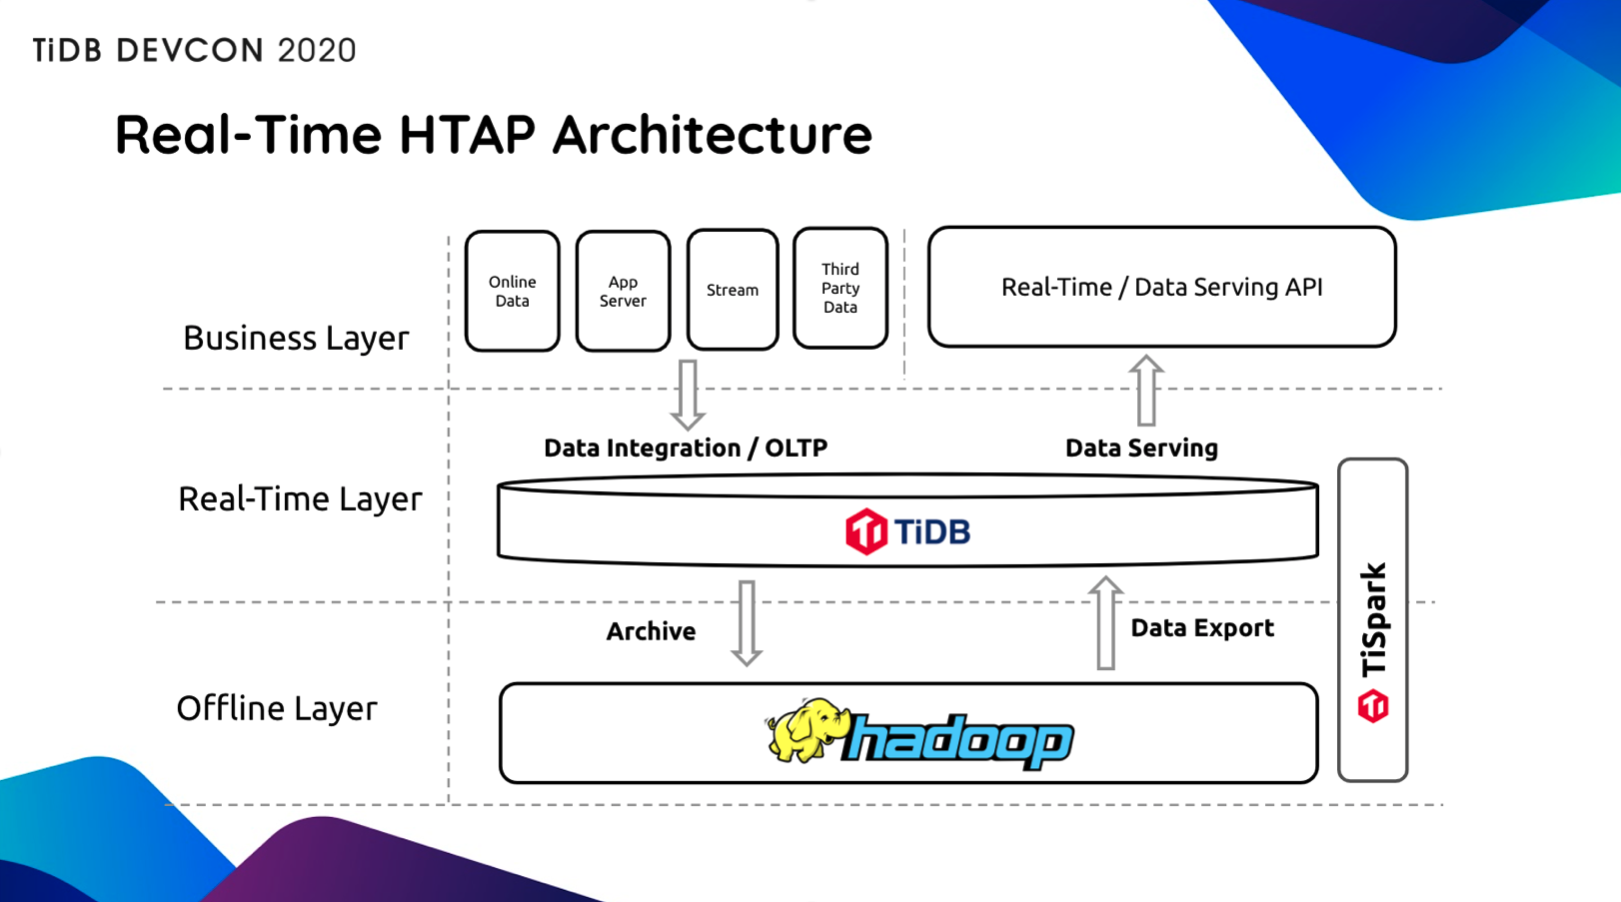 5-real-time-htap-architecture